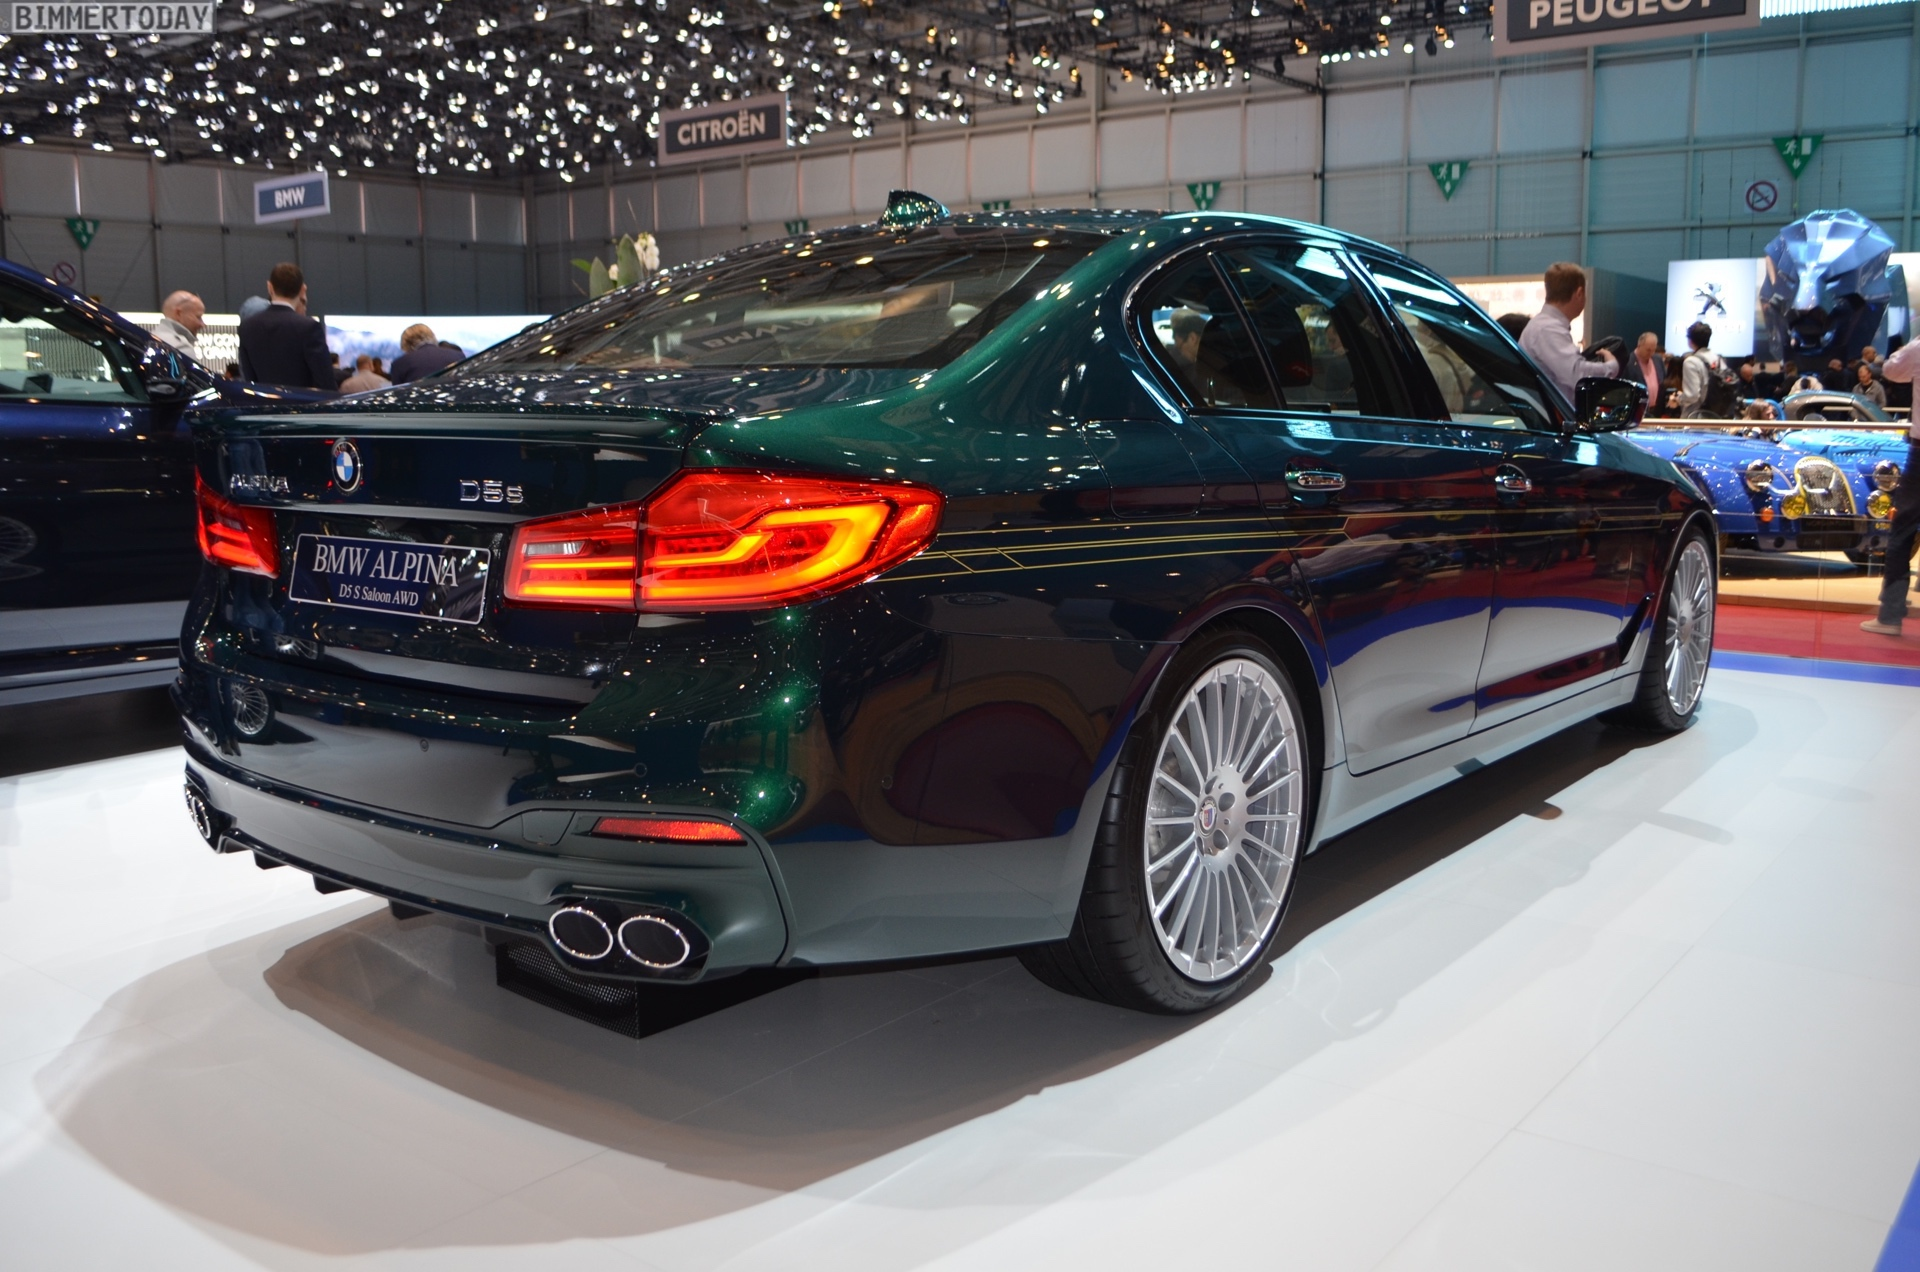 2018 Geneva Bmw Alpina D5 S In Alpina Green Looks Stunning